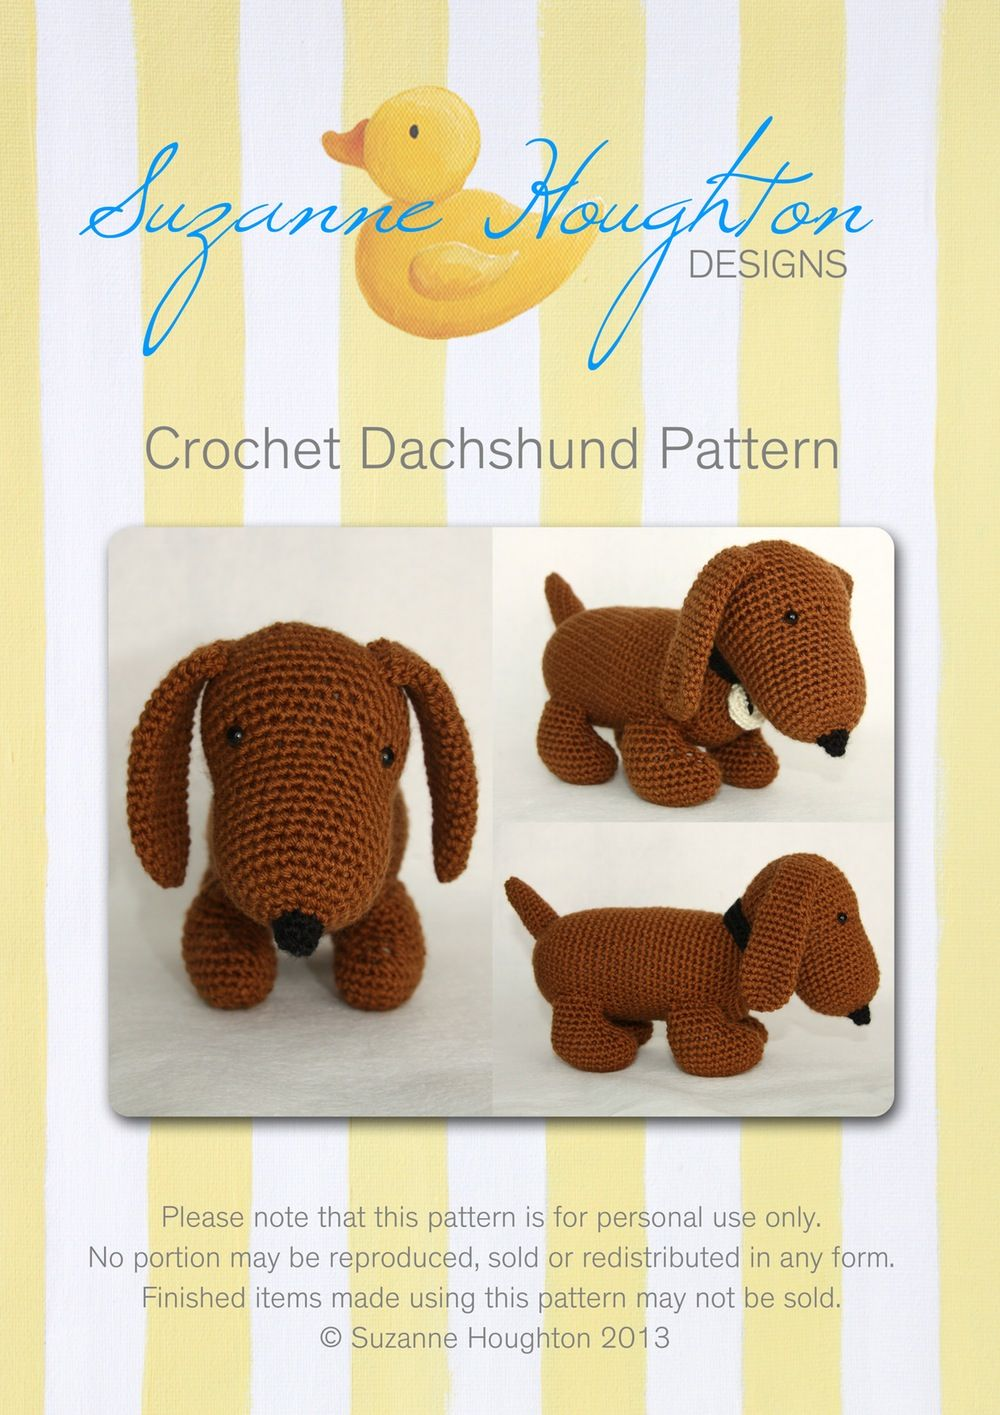 Crochet dachshund pattern digital download dachshunds crochet crochet dachshund pattern digital download bankloansurffo Gallery